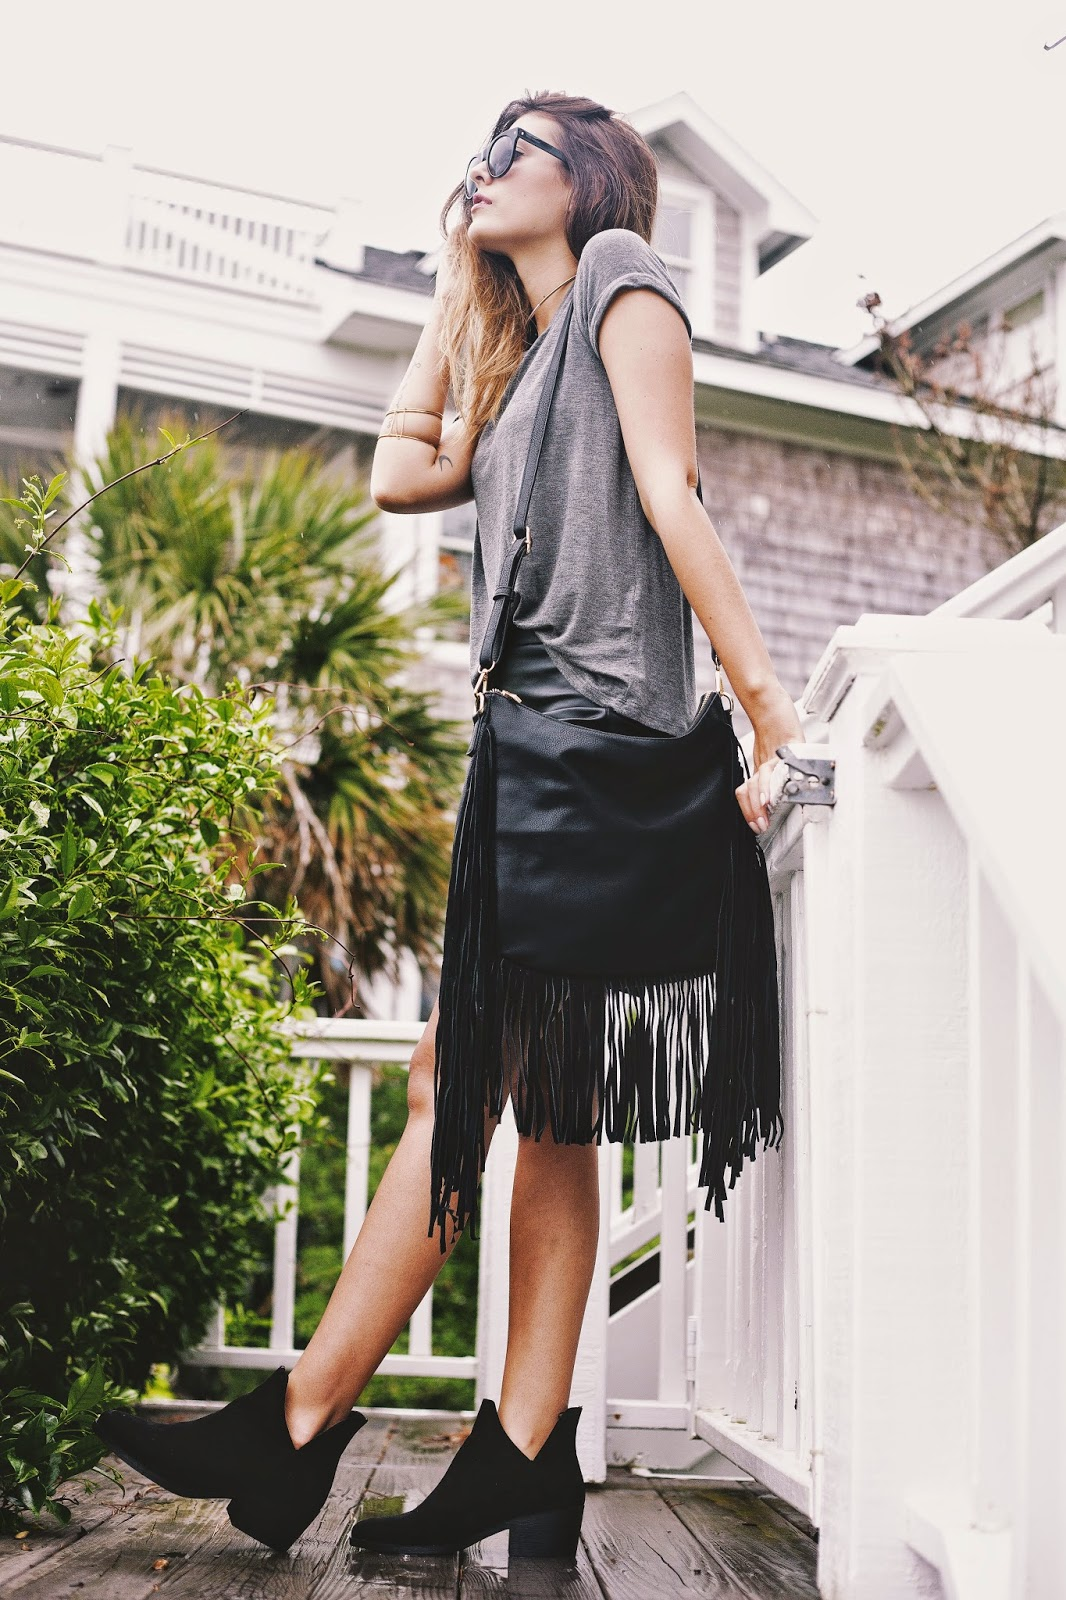 Just The Design: Danielle Dehardt is wearing a grey Forever 21 top paired with an Anti Kraft leather fringed bag and black booties